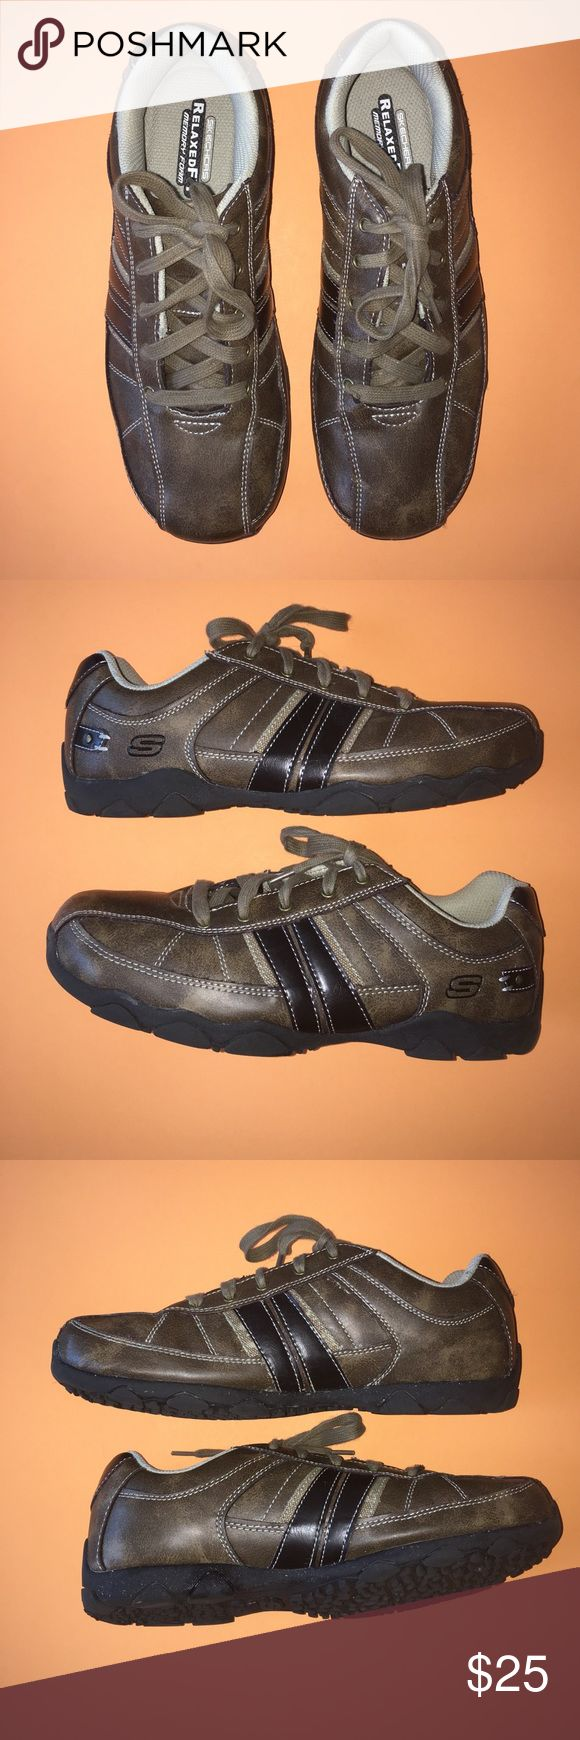 ➡️Skechers boys' lace up shoes-brown ➡️Brown lace up shoes in size 7 (big boys).  Man made materials with non marking soles required by most schools.  Relaxed fit with memory foam.  These shoes are in great condition since they were just worn a couple of times.  Perfect for school or to wear with slacks for Easter. Skechers Shoes Dress Shoes